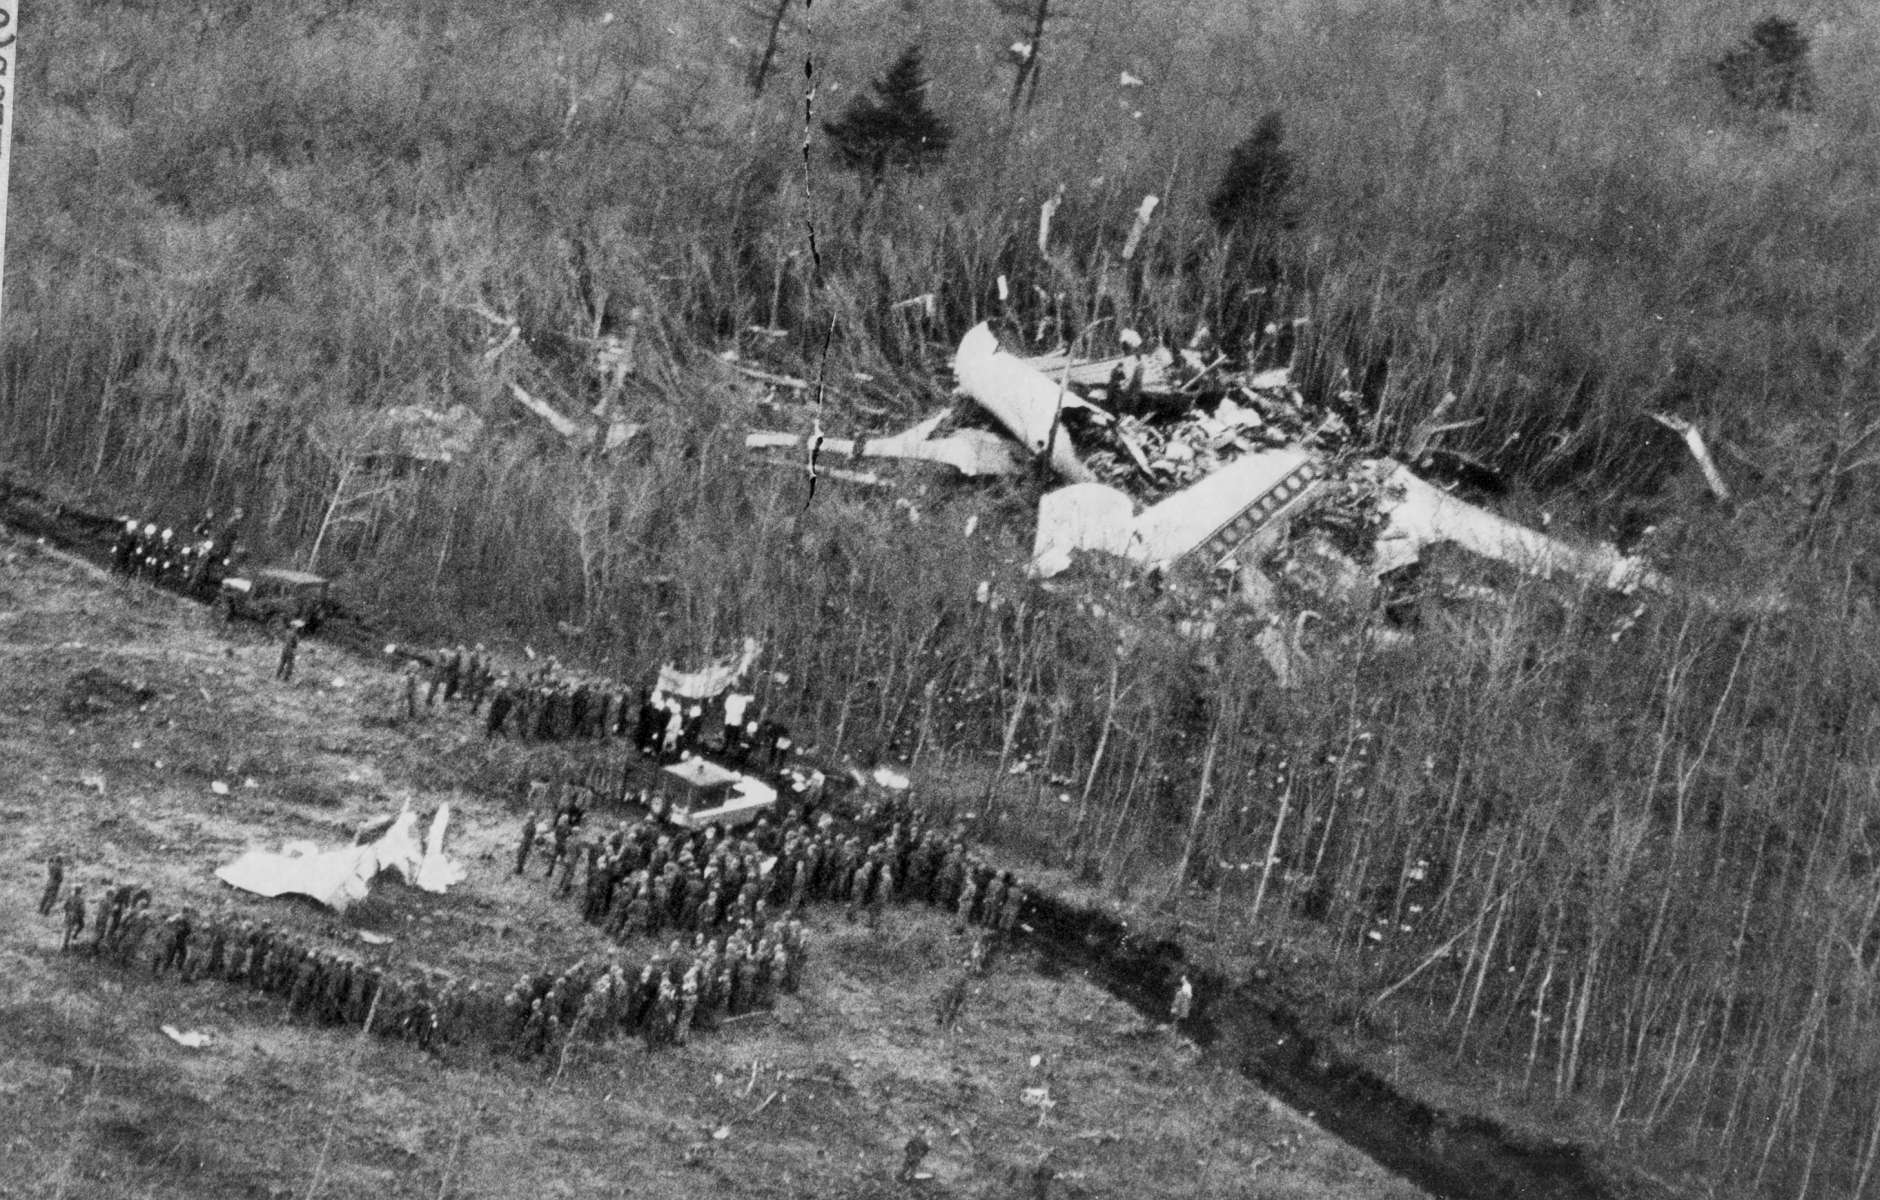 Rescue workers gather around bits of wreckage, lower left, at scene of the crash of a BOAC 707 jet on Mt. Fuji in Japan,  March 5, 1966. All 124 persons aboard were killed in the crash. In background is part of Jetliner. (AP Photo)